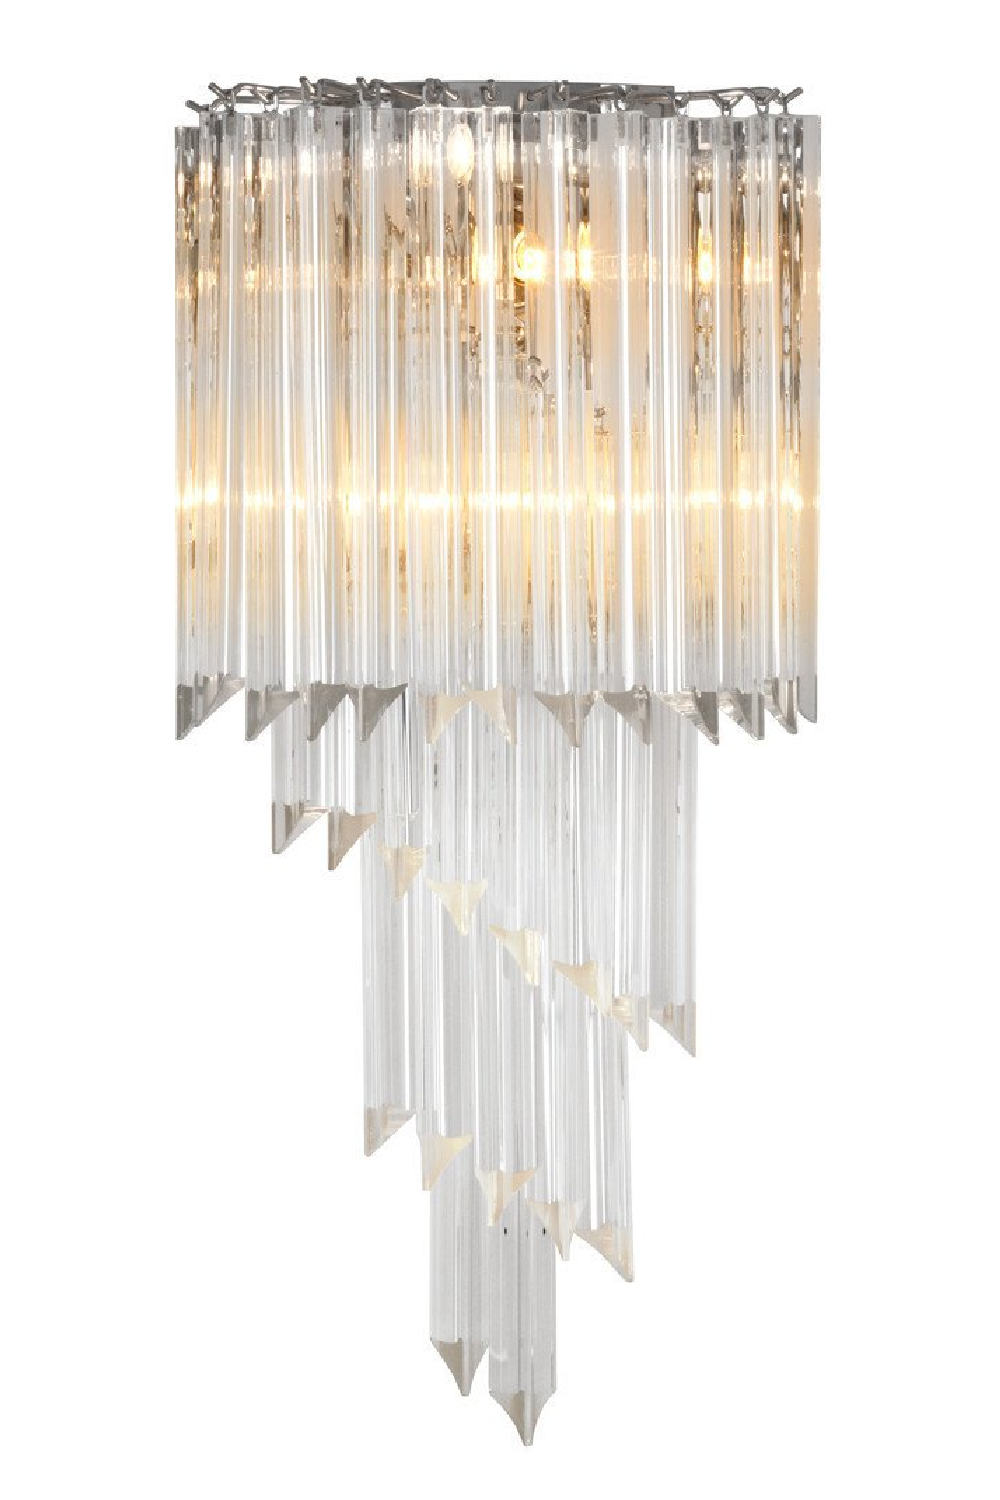 Glass Wall Lamp | Eichholtz Marino | OROA Modern & Luxury Furniture